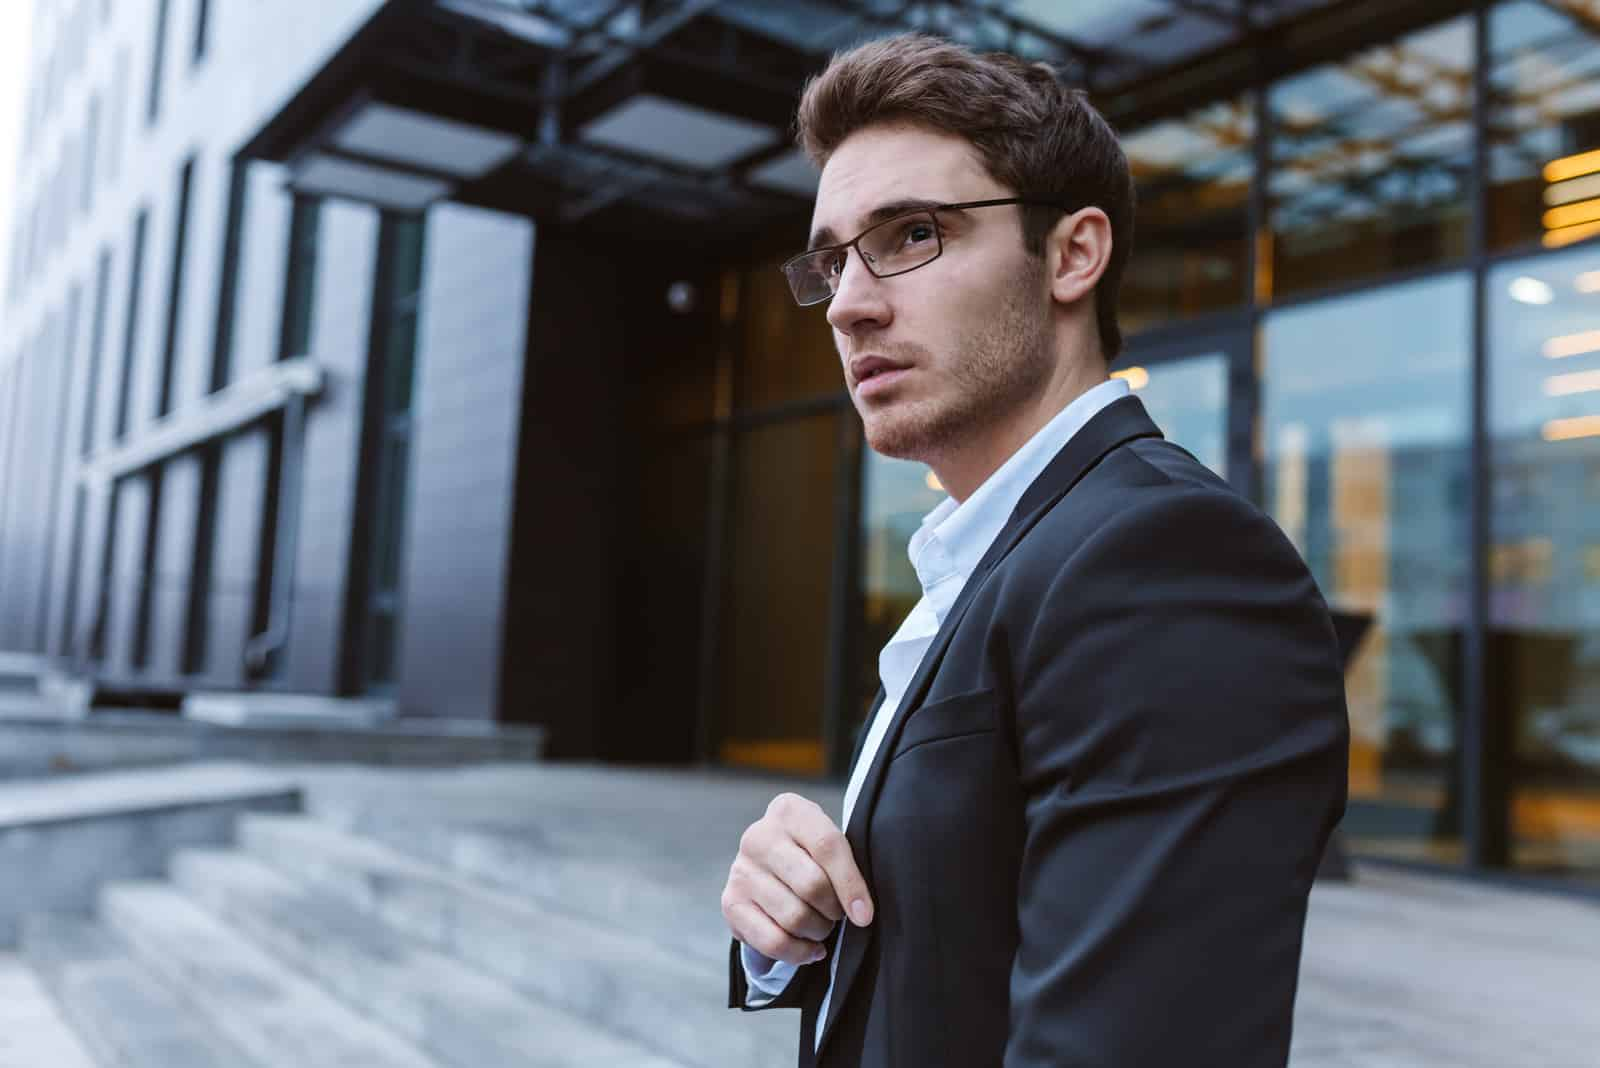 Businessman in suit and glasses standing outdoor